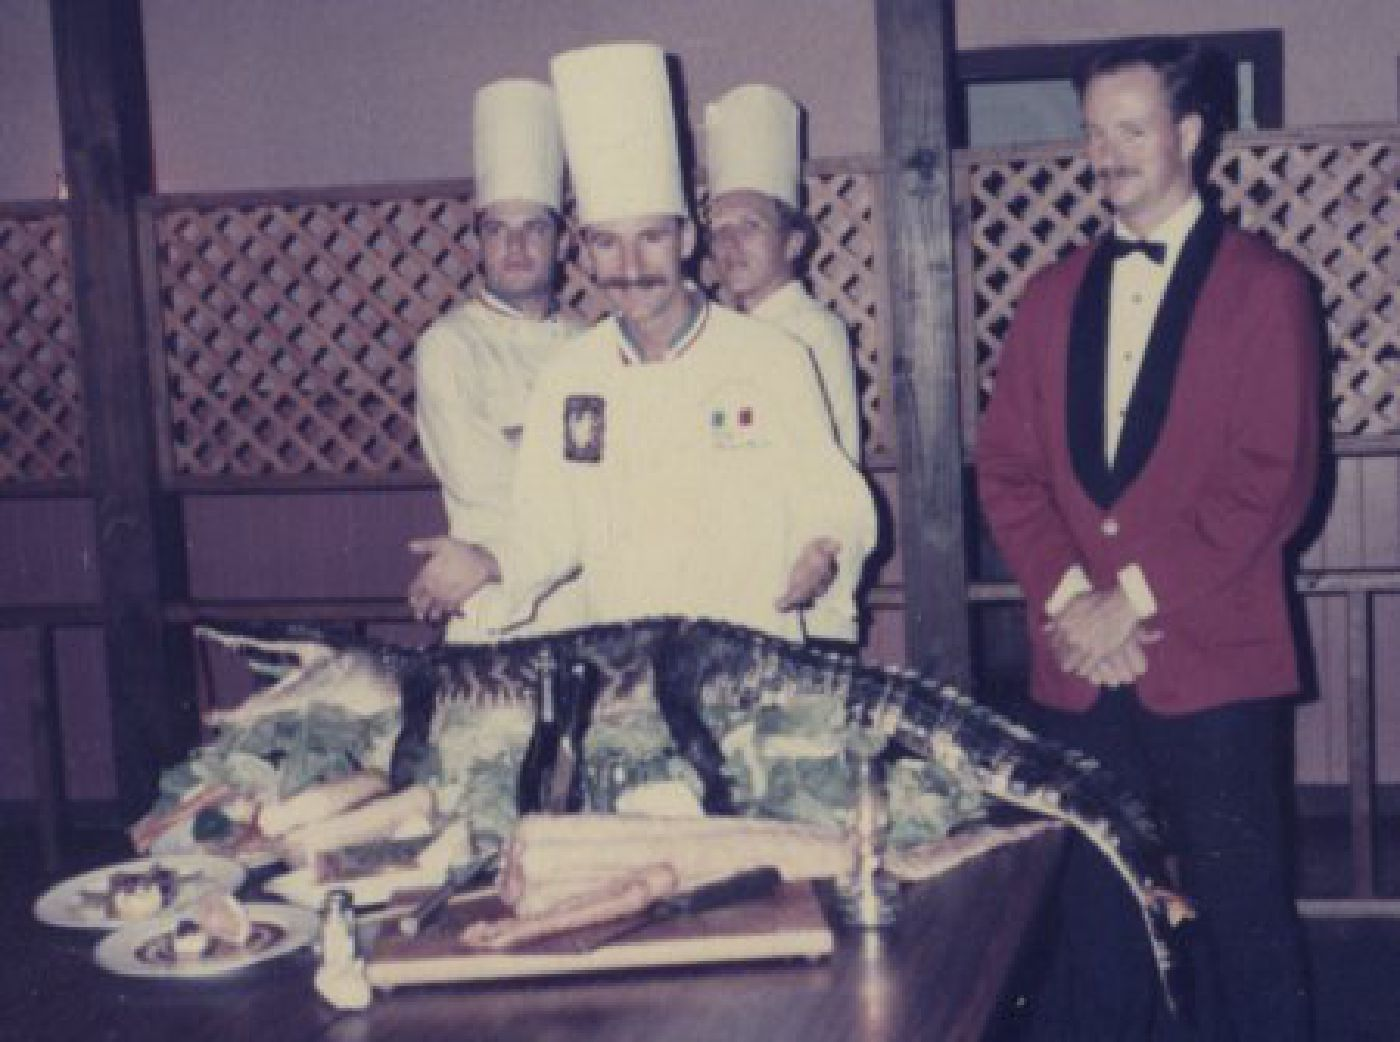 Chef Philippe presents alligator as an exotic cuisine